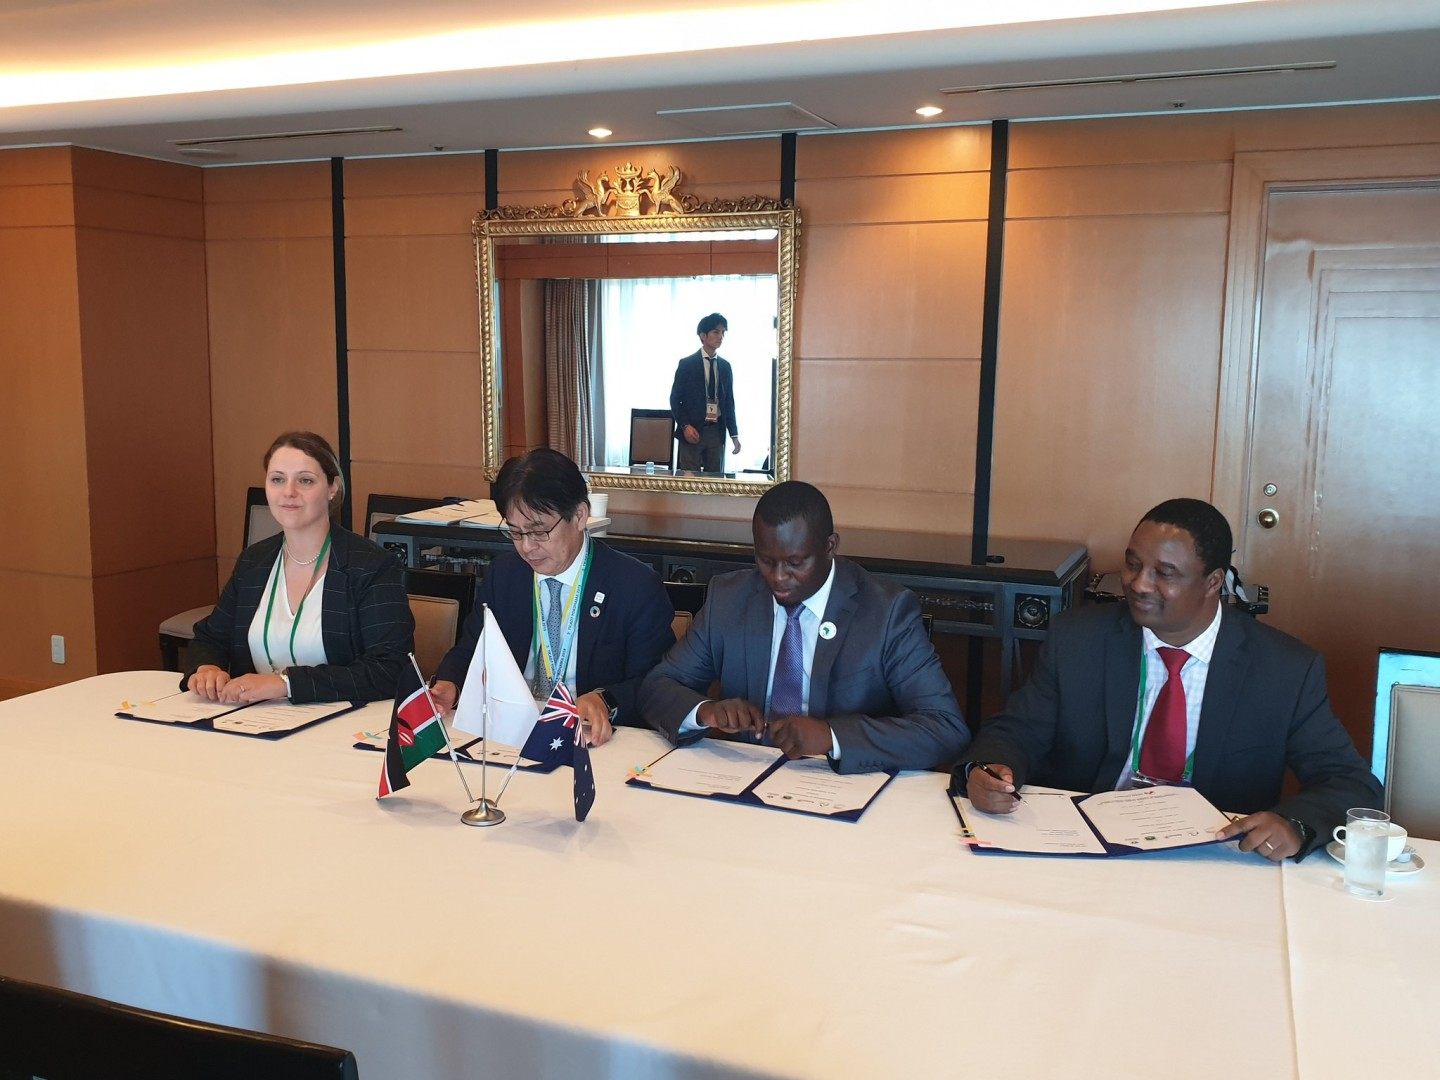 Windlab East Africa, Eurus Energy, the Kenya Investment Authority and Meru County Government sign a MoU for the Meru County Energy Park at the Tokyo International Conference on African Development on Thursday 29 August, 2019. Source: Twitter